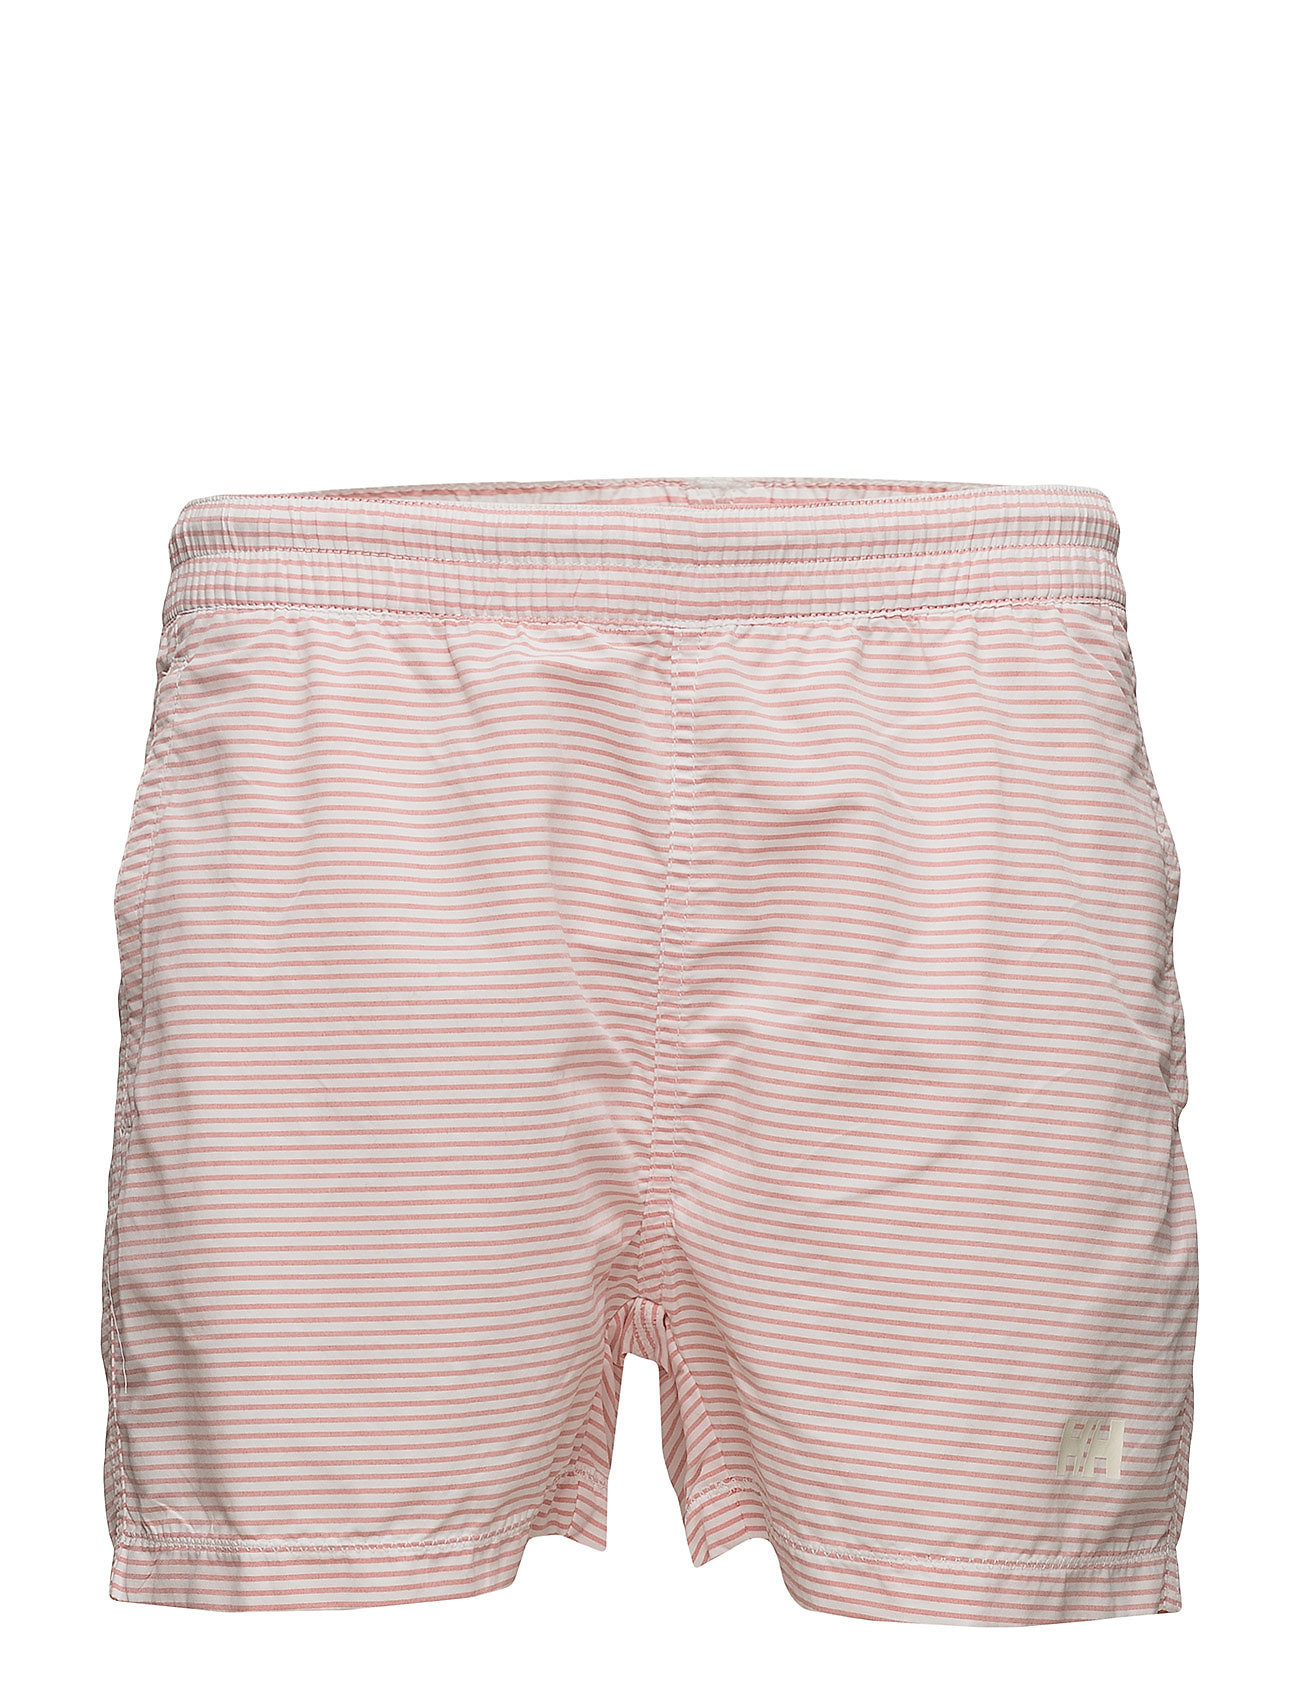 Helly Hansen COLWELL TRUNK - 118 PAPRIKA STRIPE